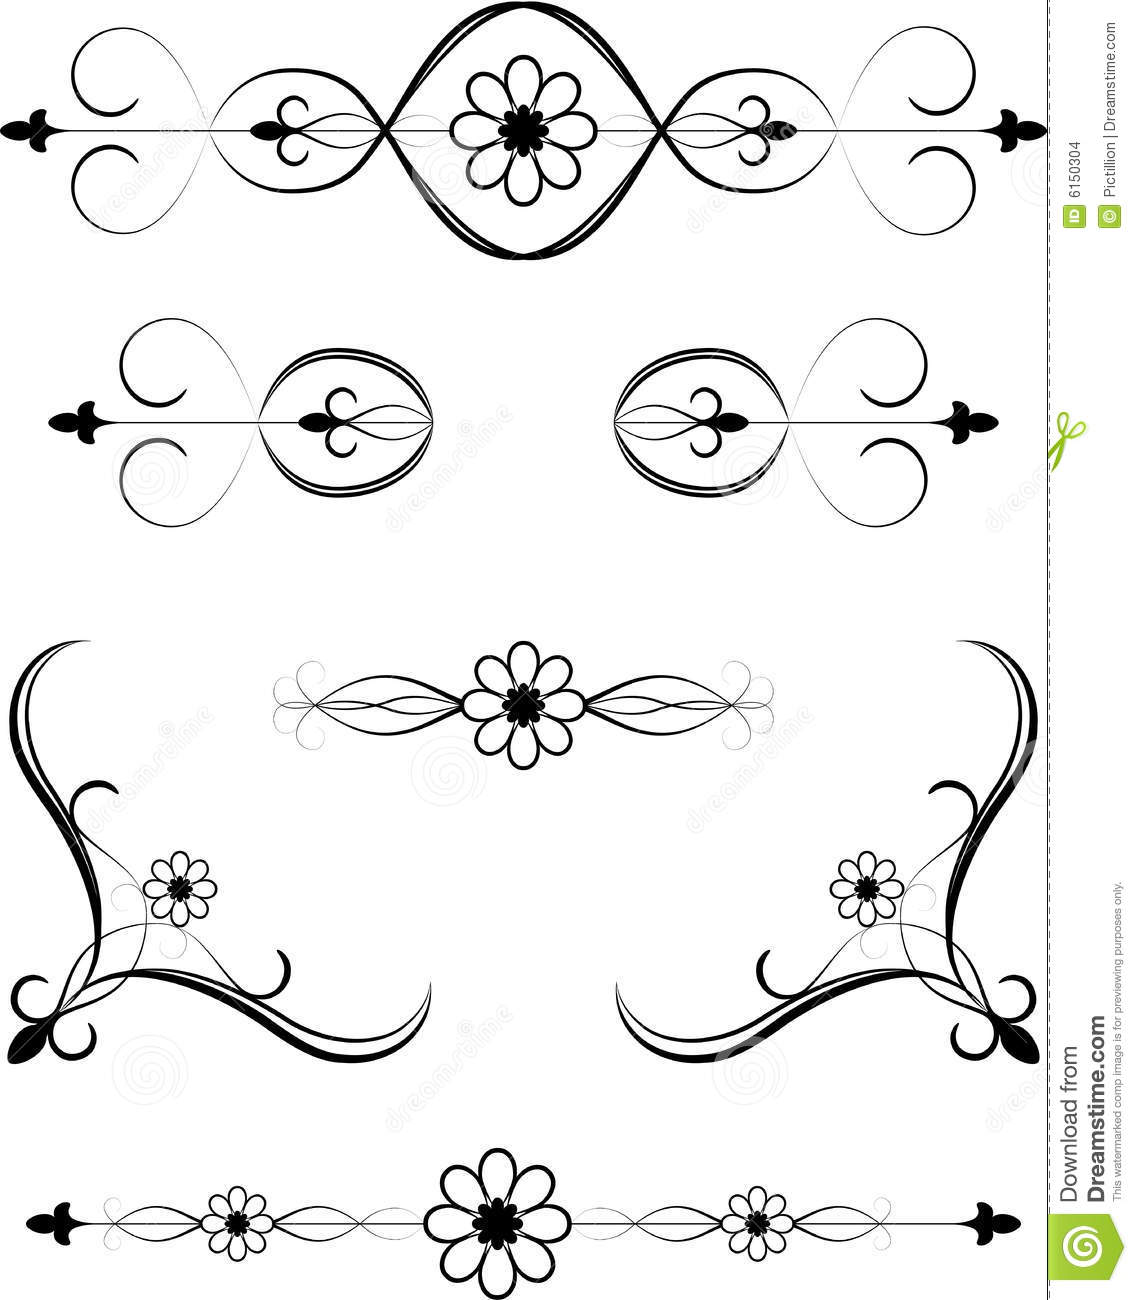 Floral Embellishment Stock Images